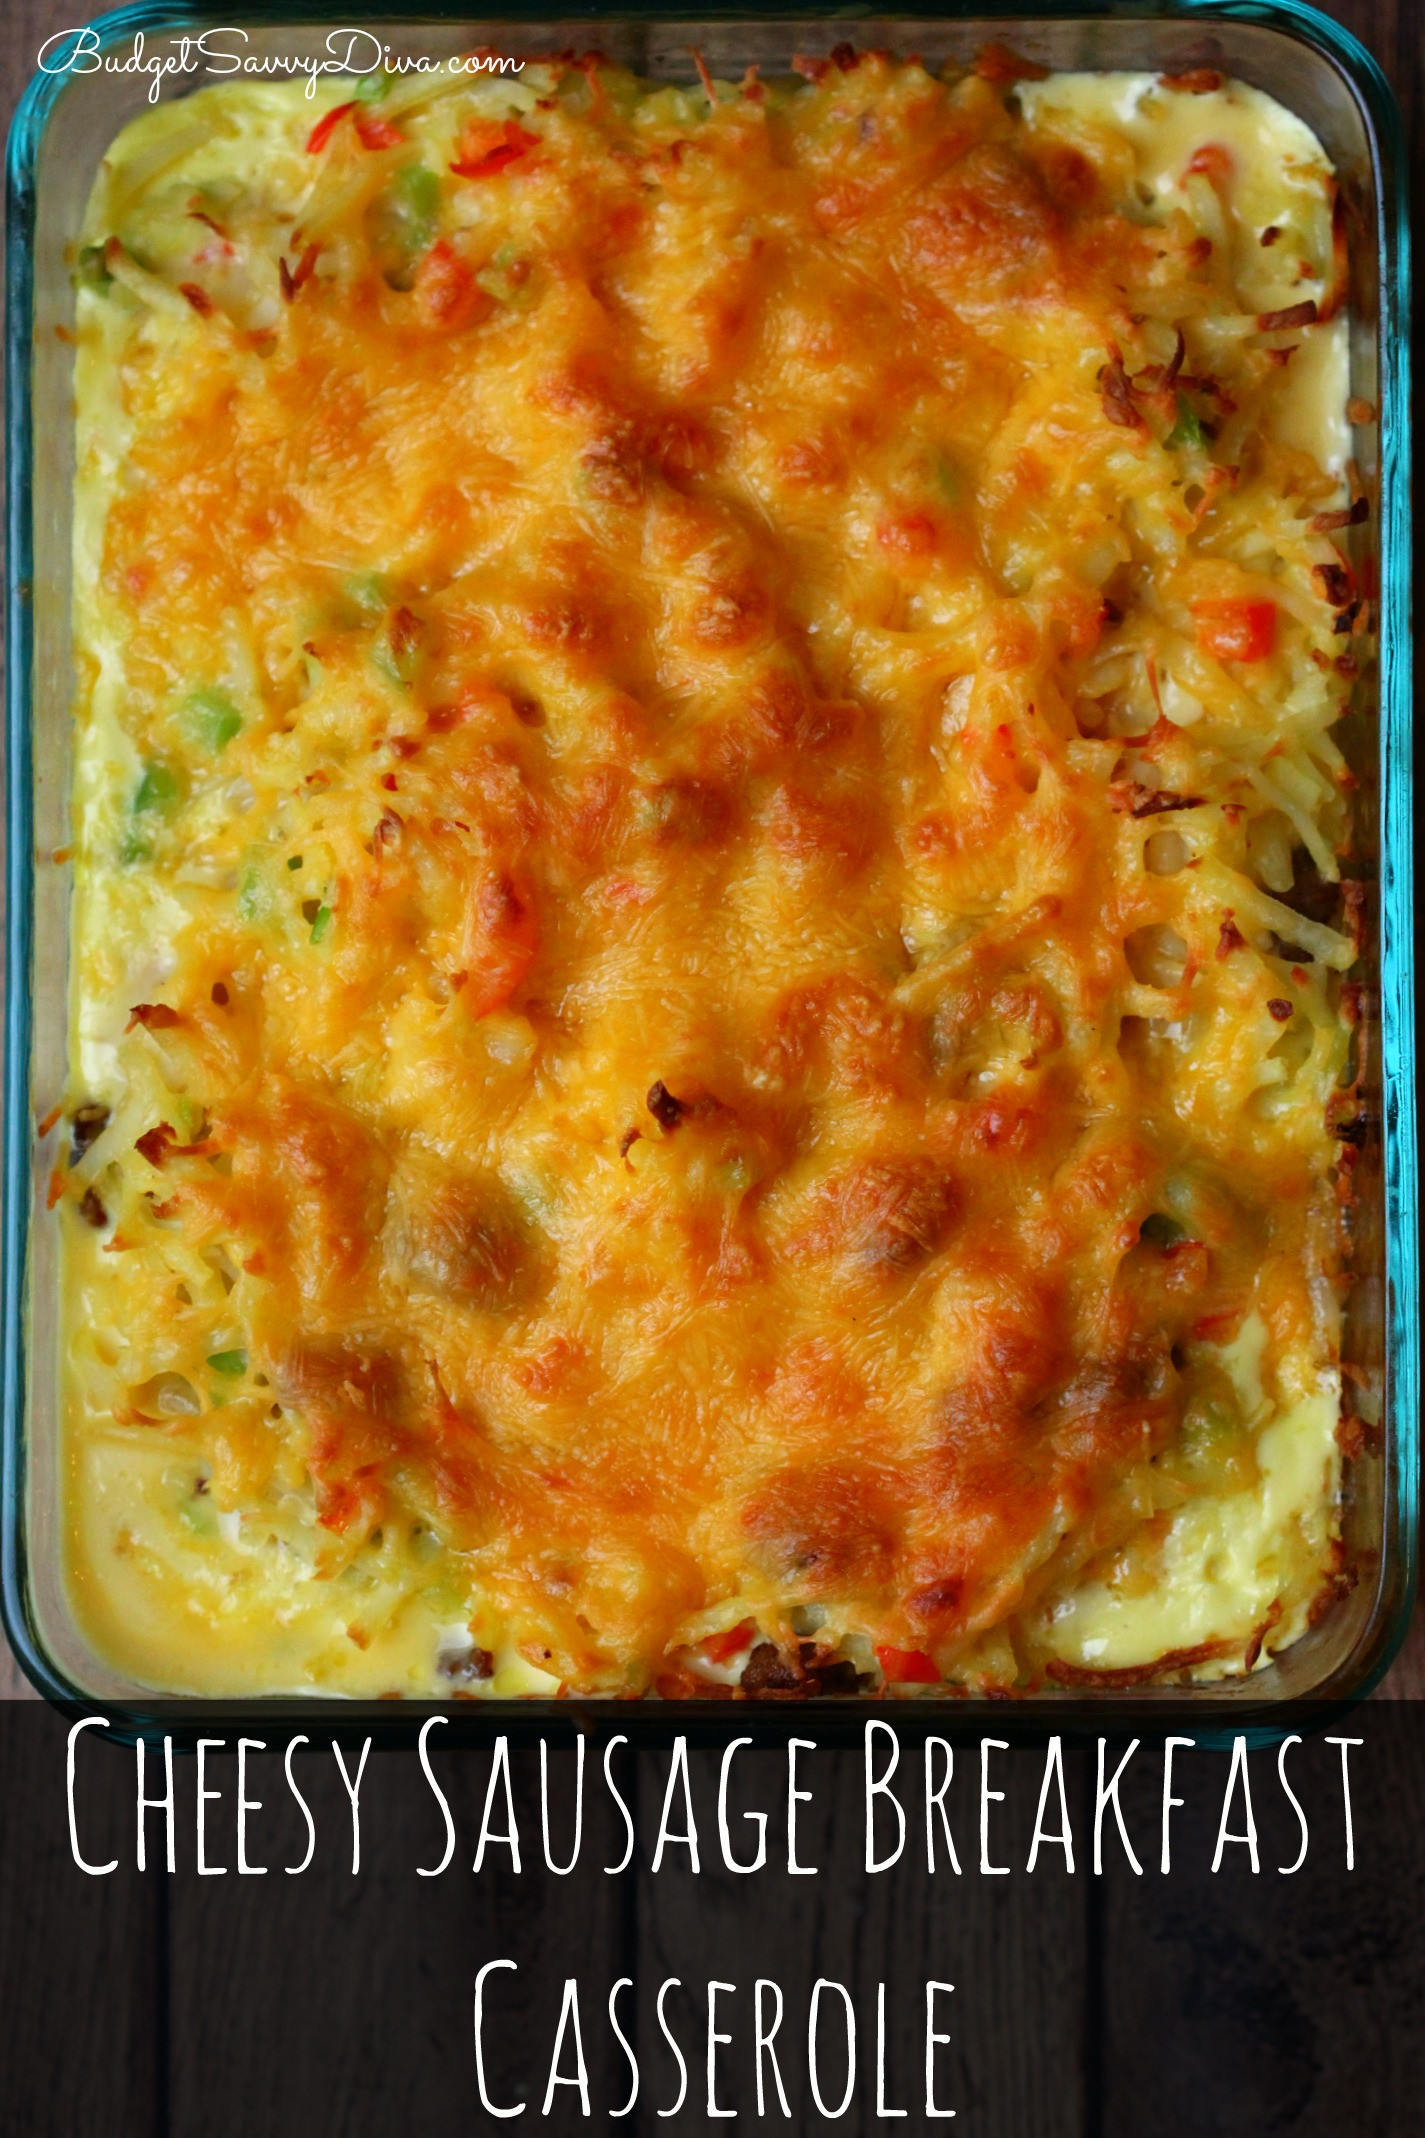 Breakfast Casseroles With Sausage  Cheesy Sausage Breakfast Casserole Recipe